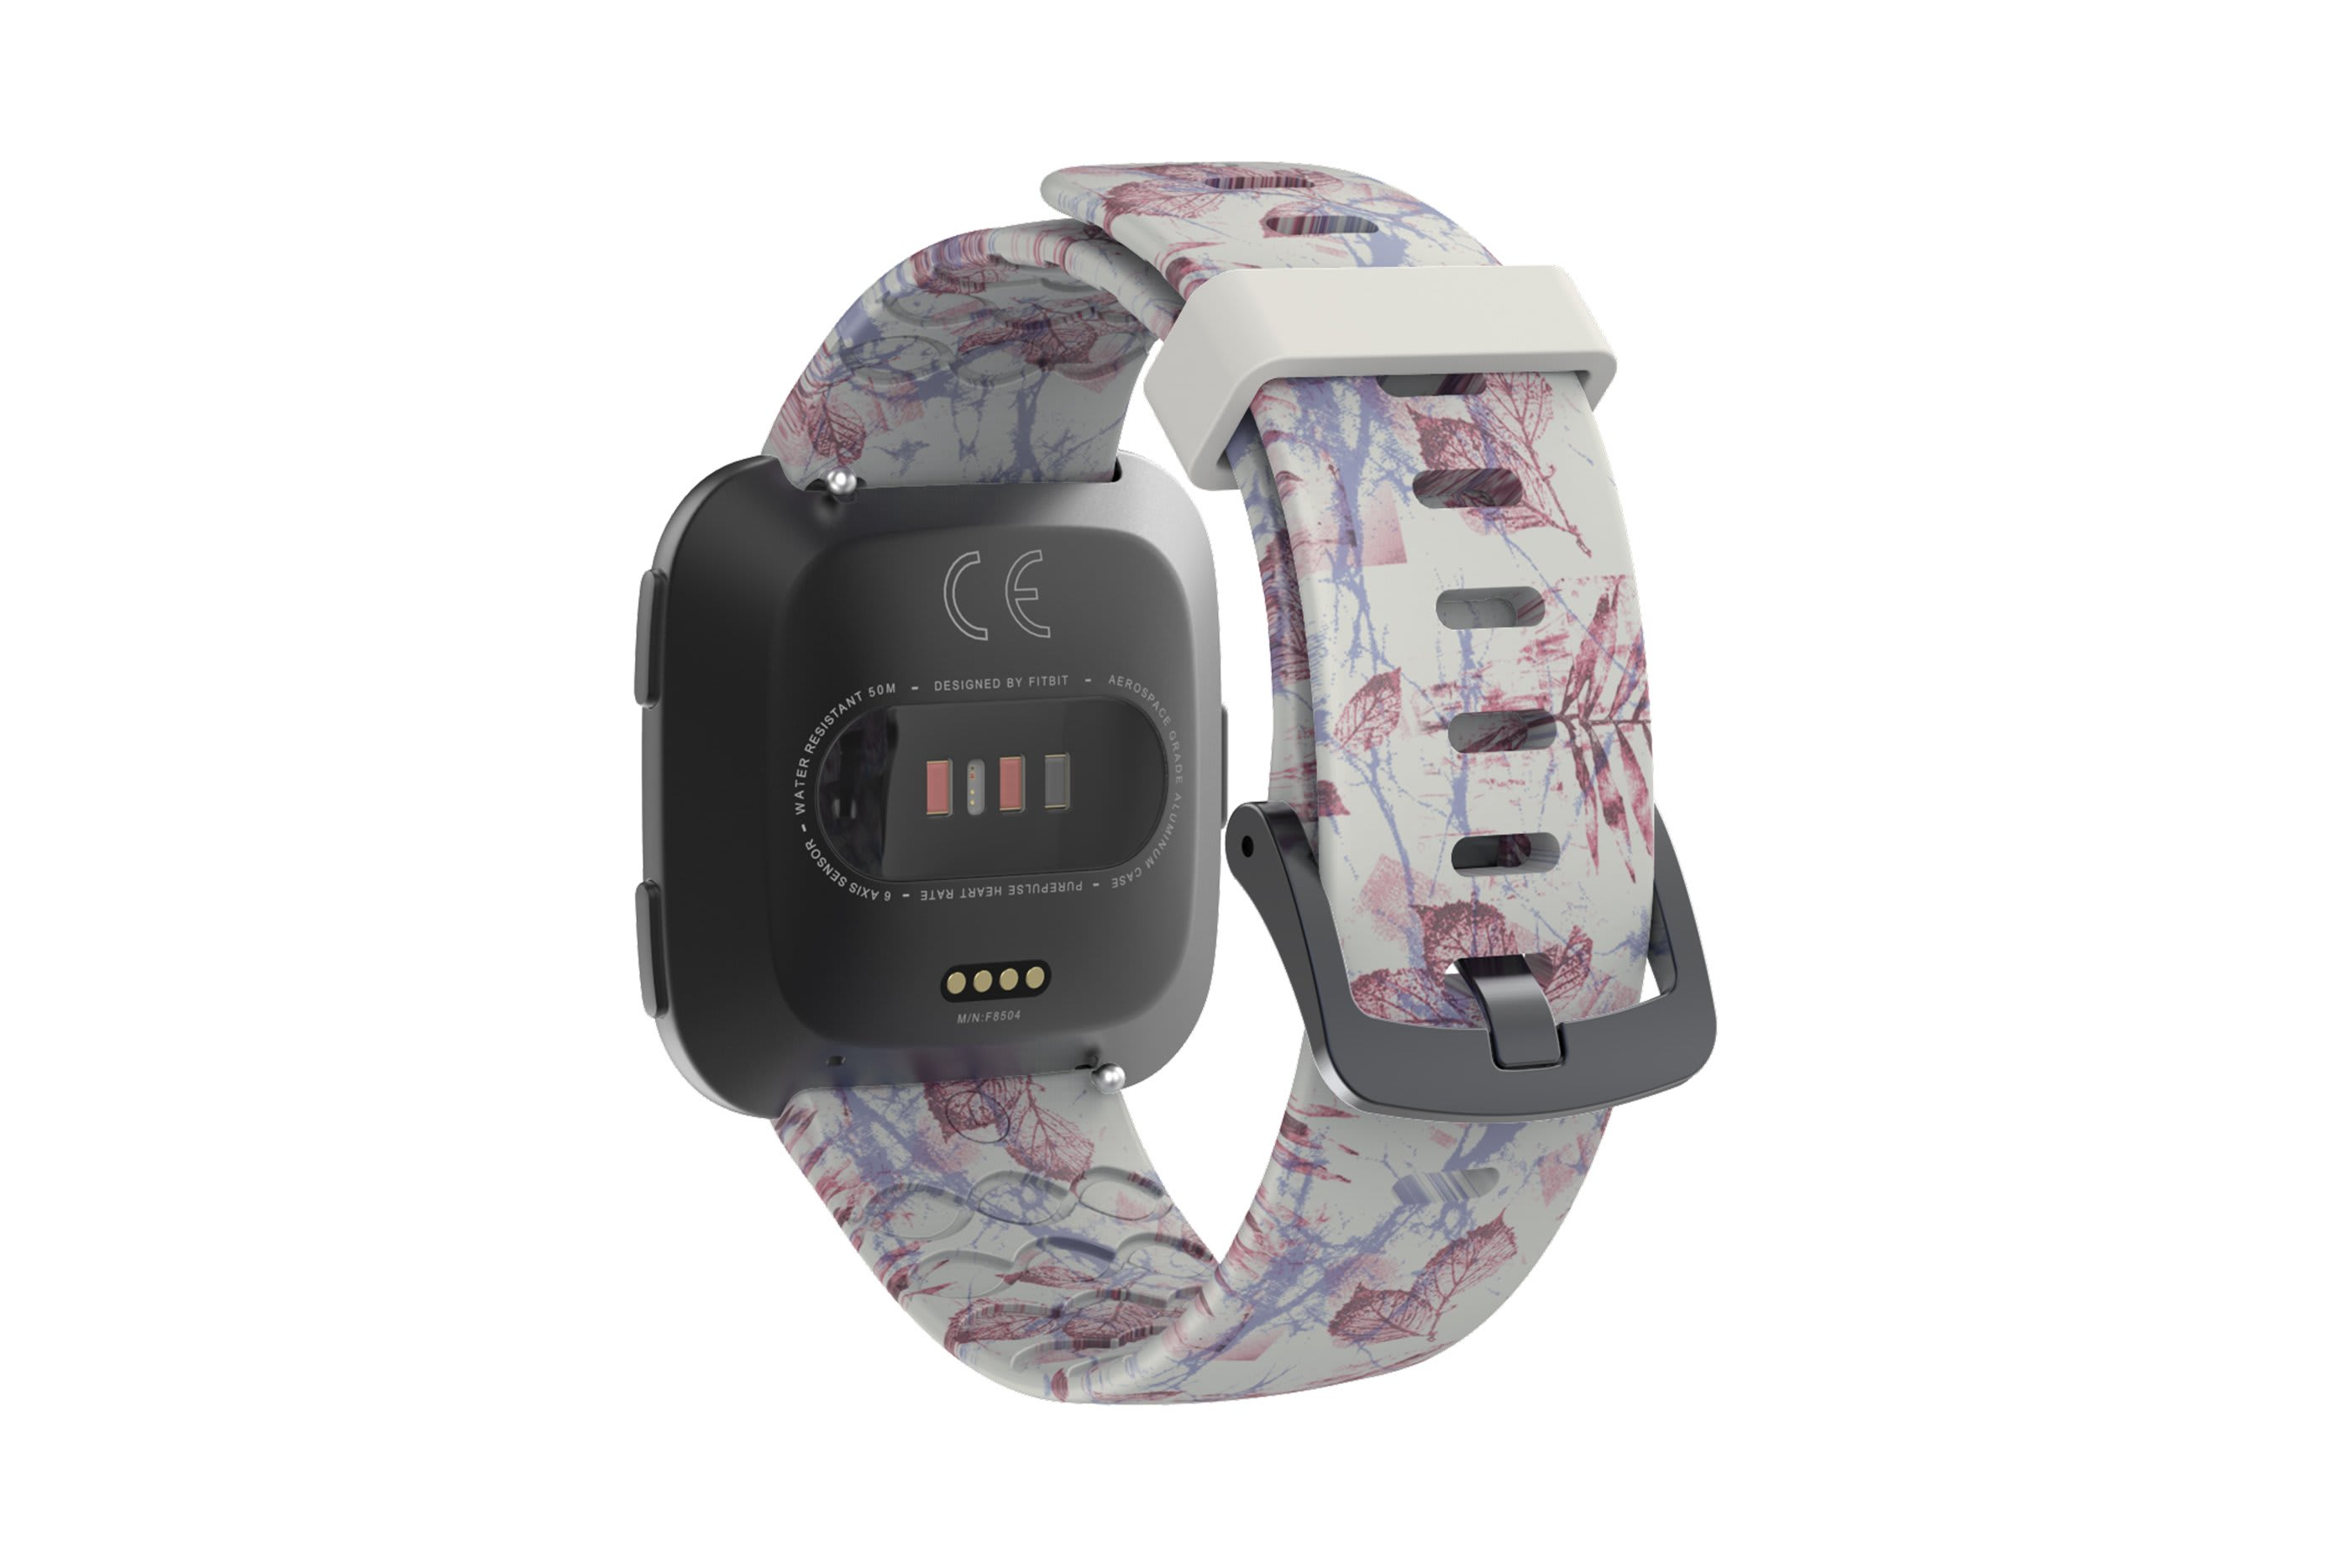 Breeze fitbit versa watch band with gray hardware viewed from top down